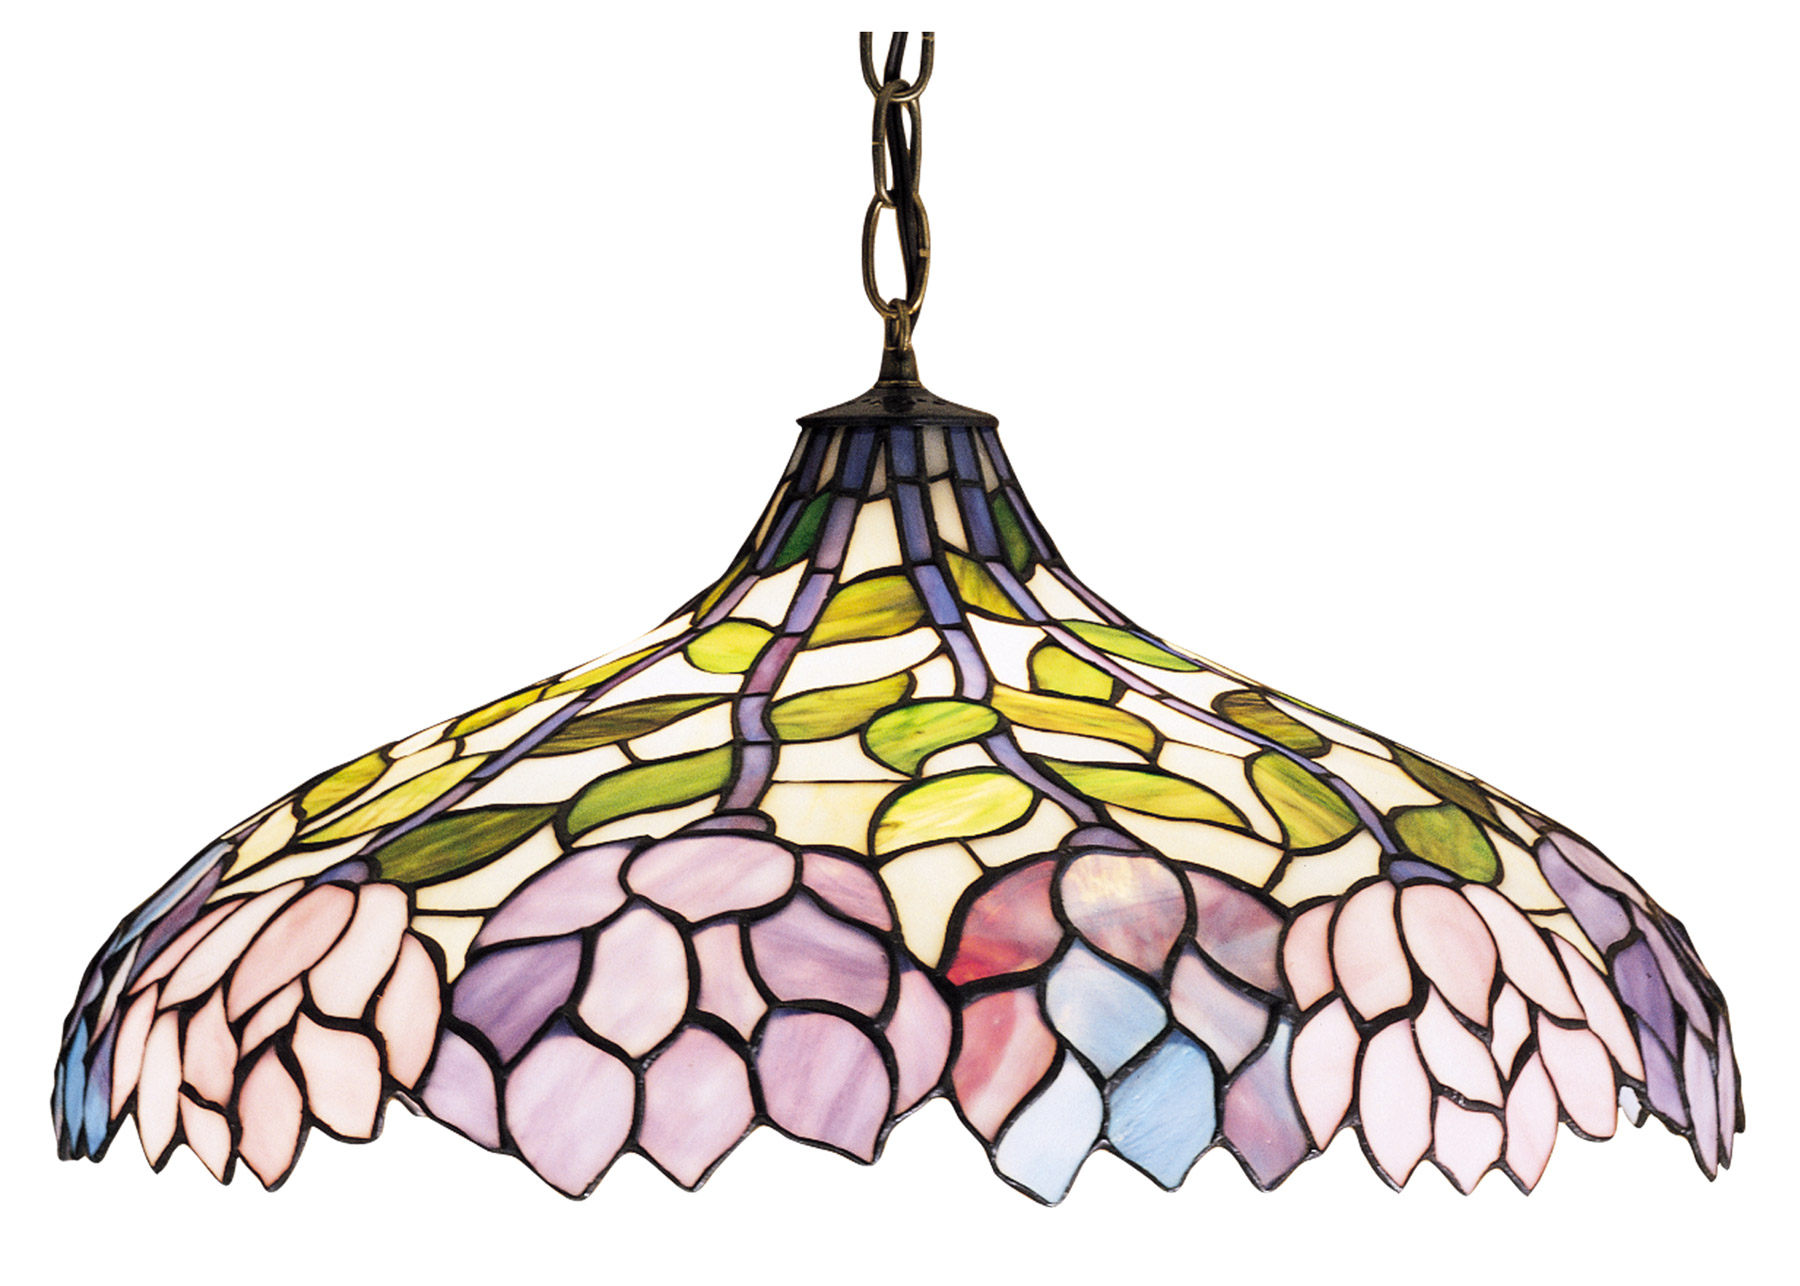 lamps post inspirational ceilings chandelier marks whse light victorian of ceiling crystal desk tiffany style luxury lamp table chrome related stained lights